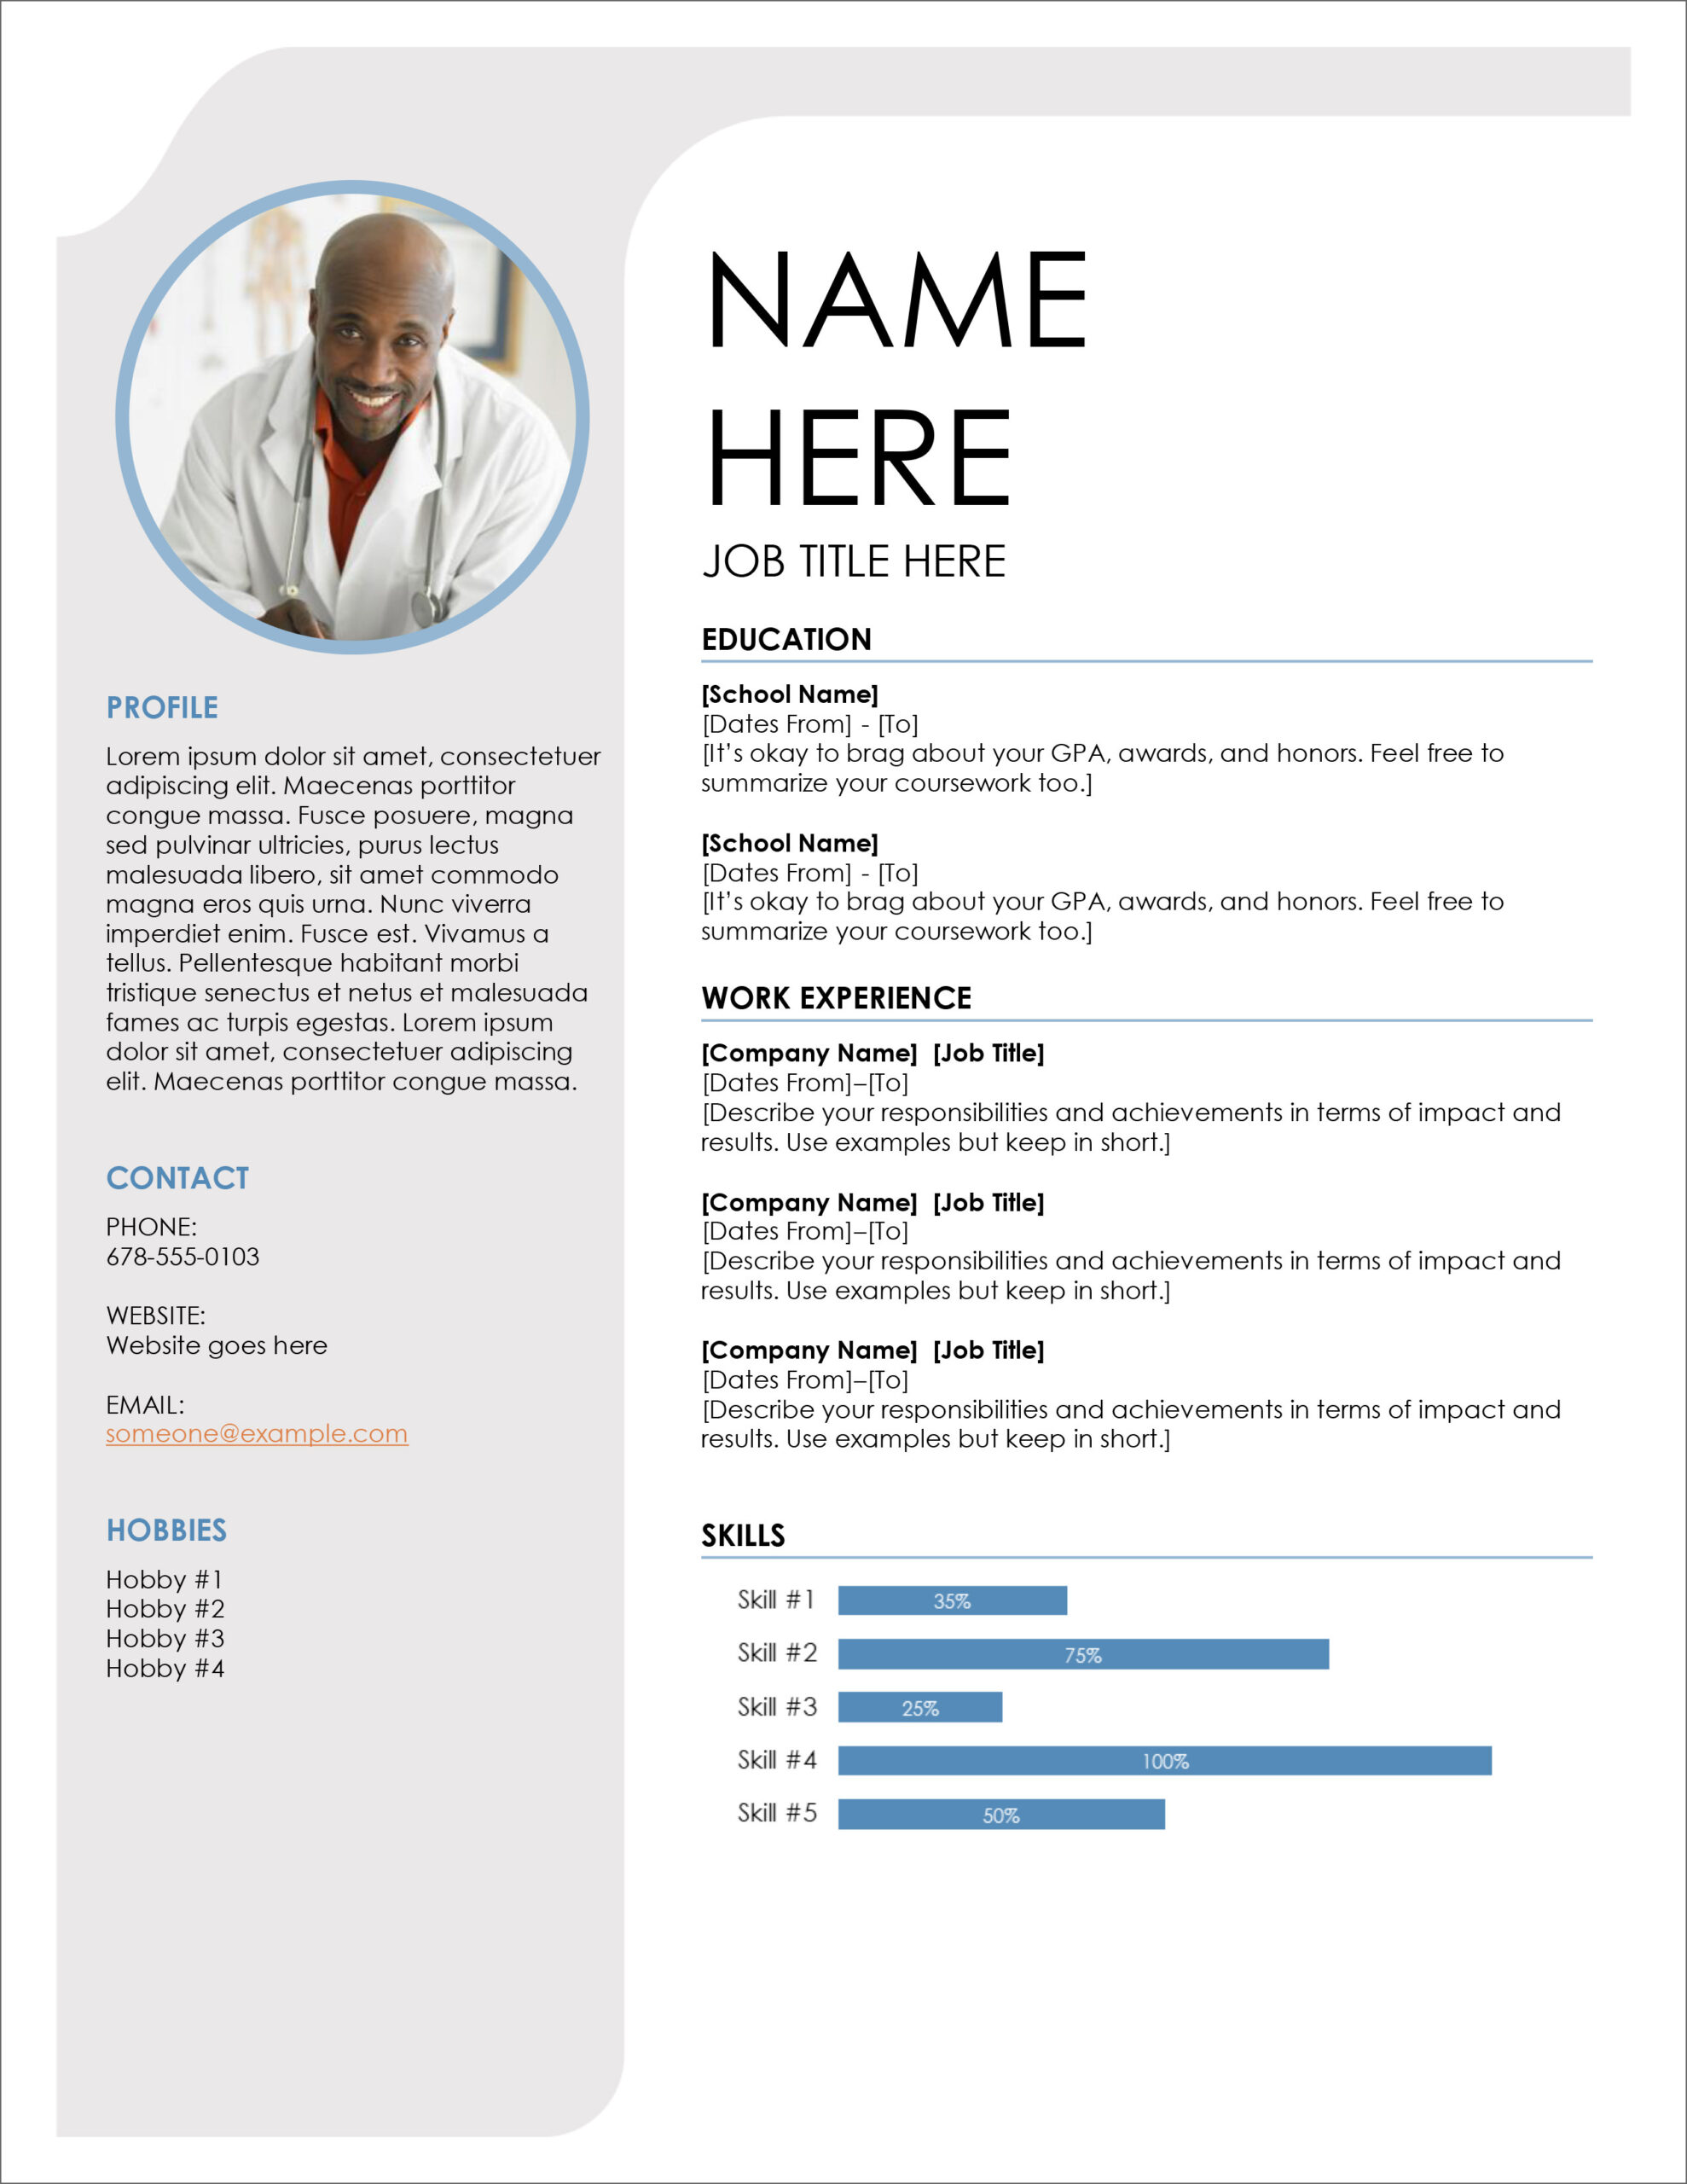 free modern resume cv templates minimalist simple clean design pdf microsoft template Resume Resume Templates Free Download Pdf